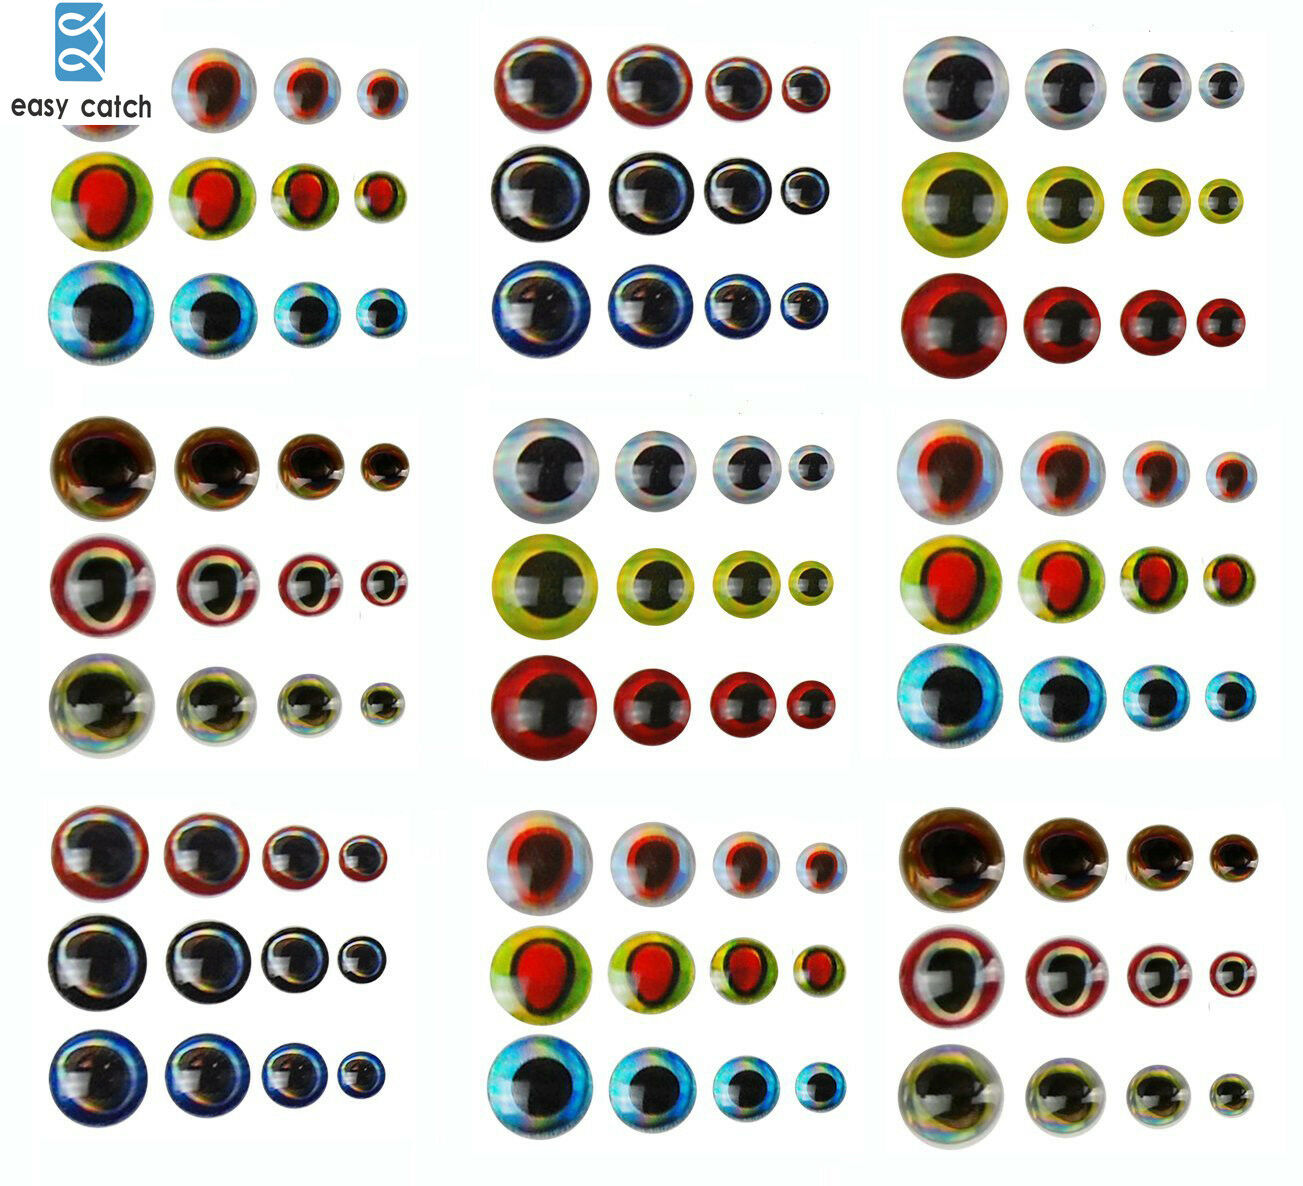 Details about  /500PCS 3-6mm Fish Eyes 3D Holographic Lure Eyes Fly Tying Jigs Crafts Dolls .f/'